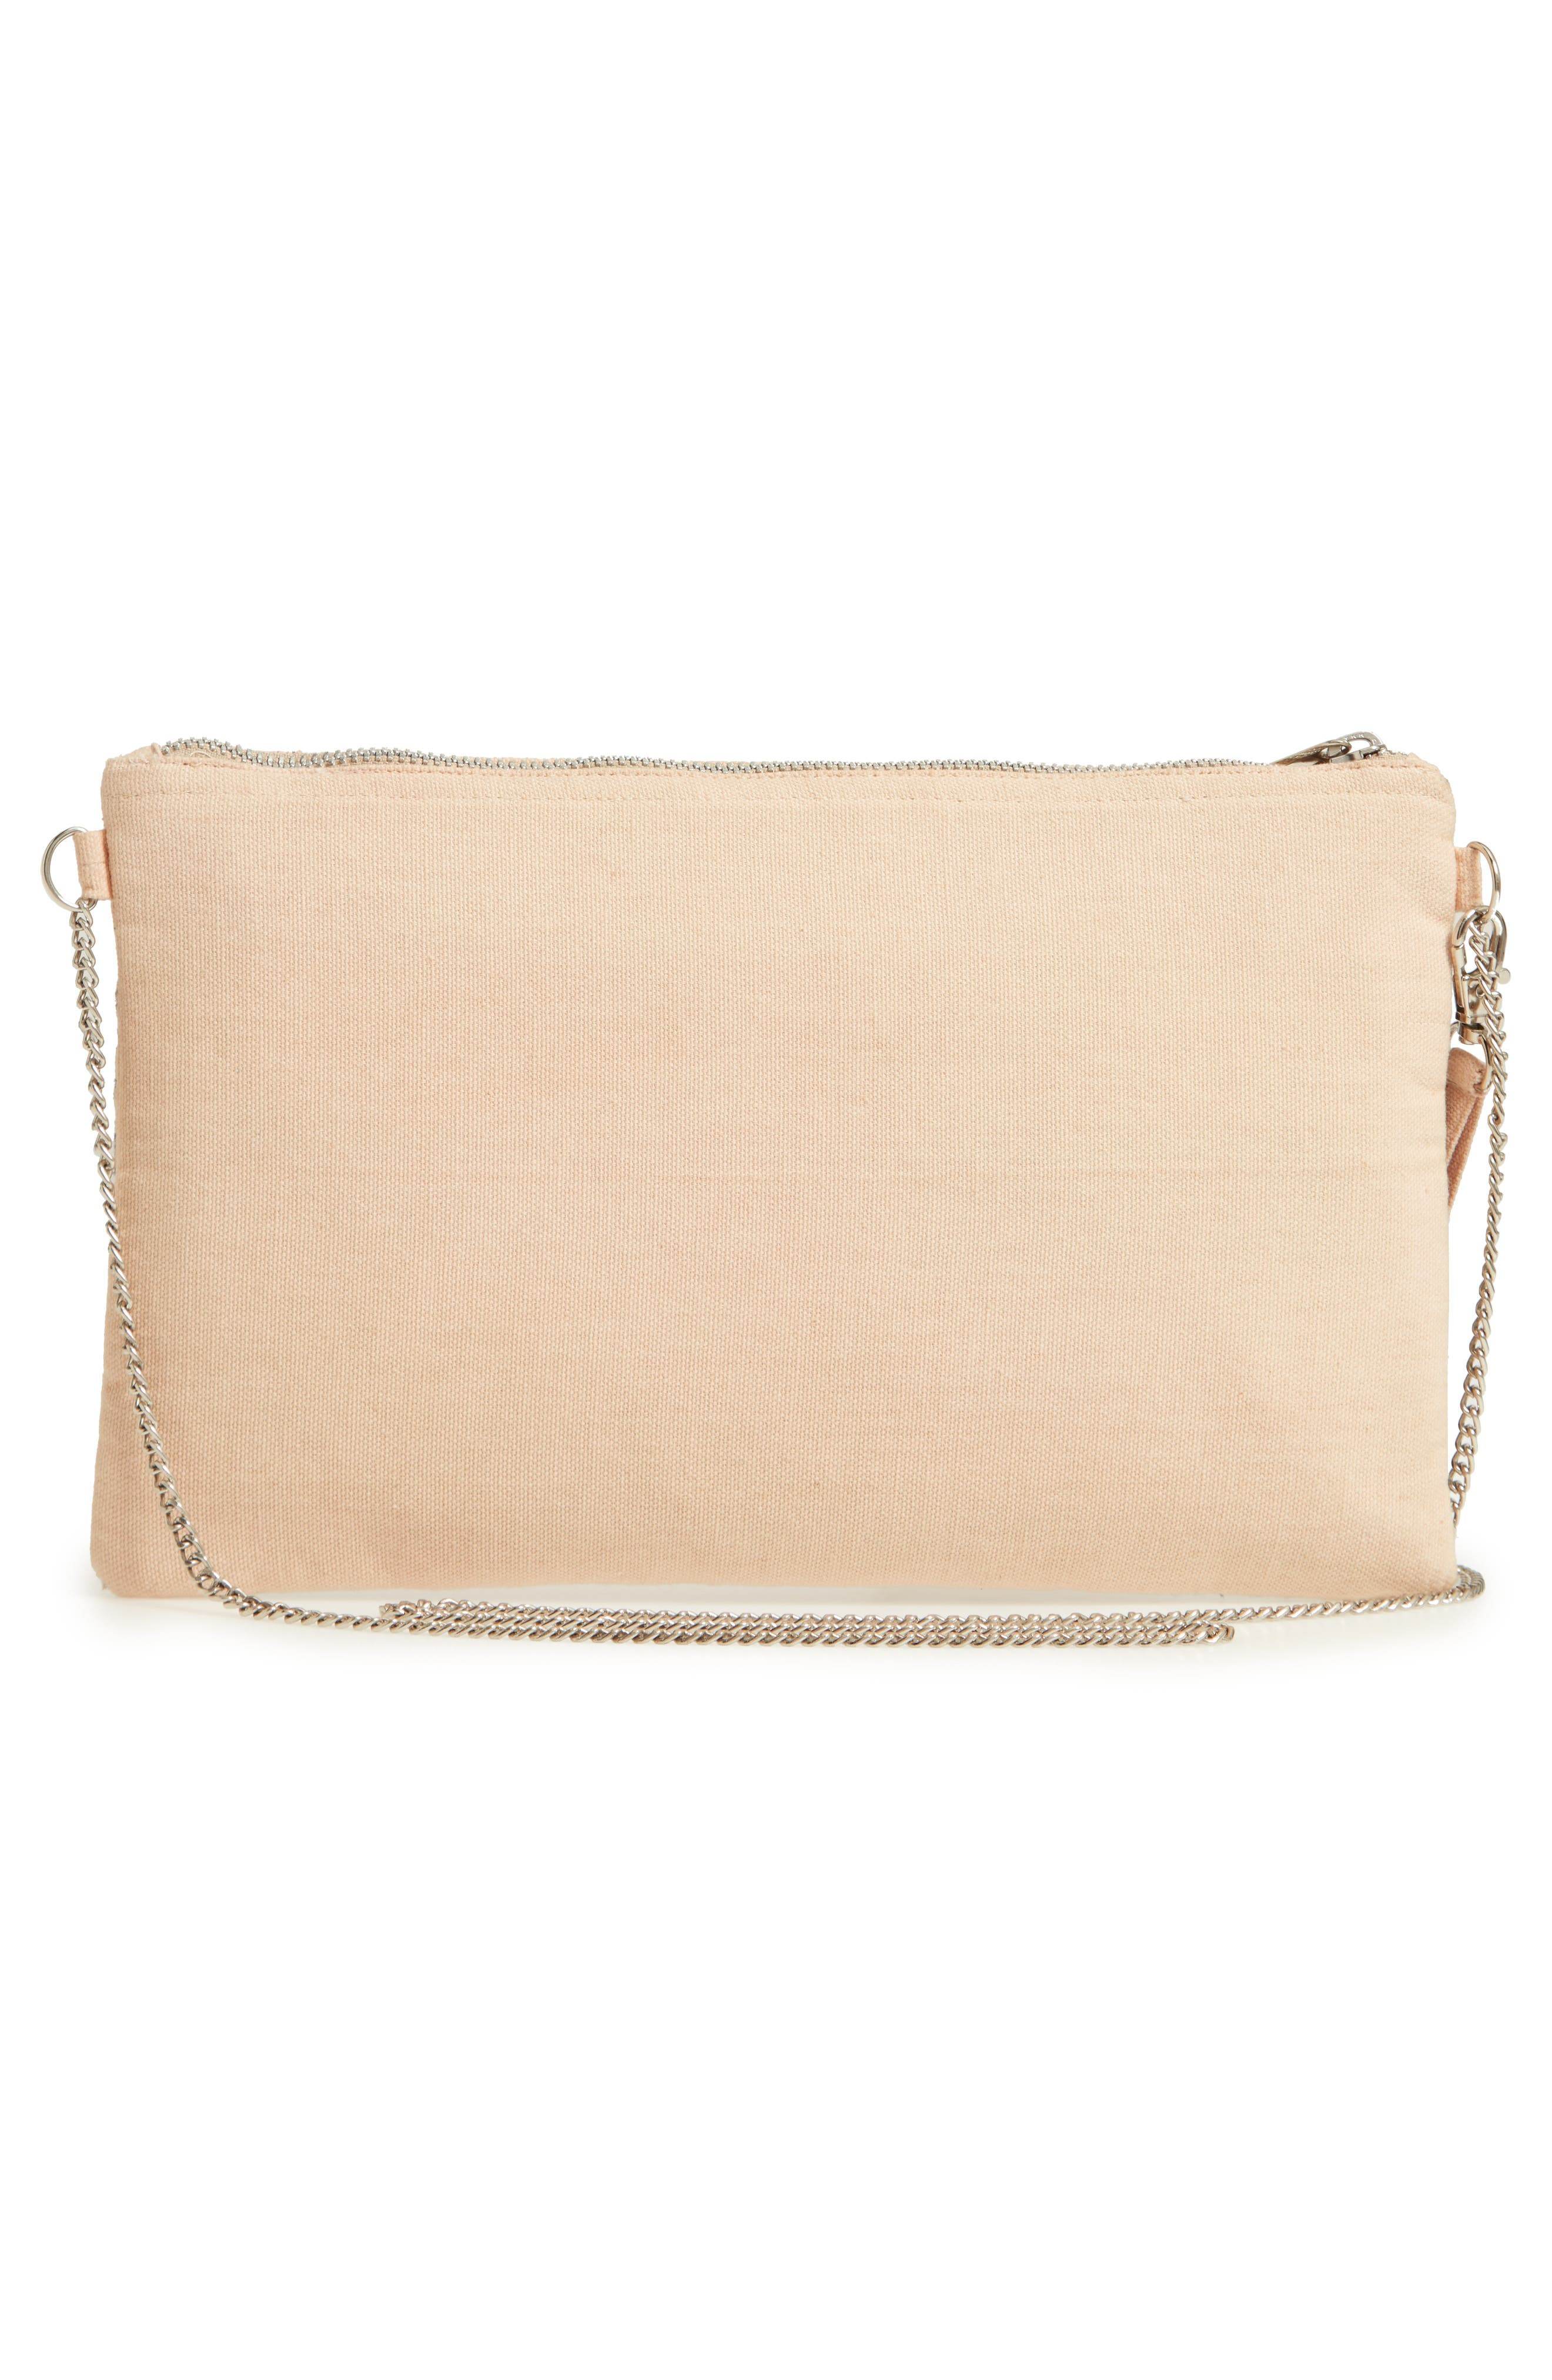 Embroidered Zip Clutch,                             Alternate thumbnail 3, color,                             650